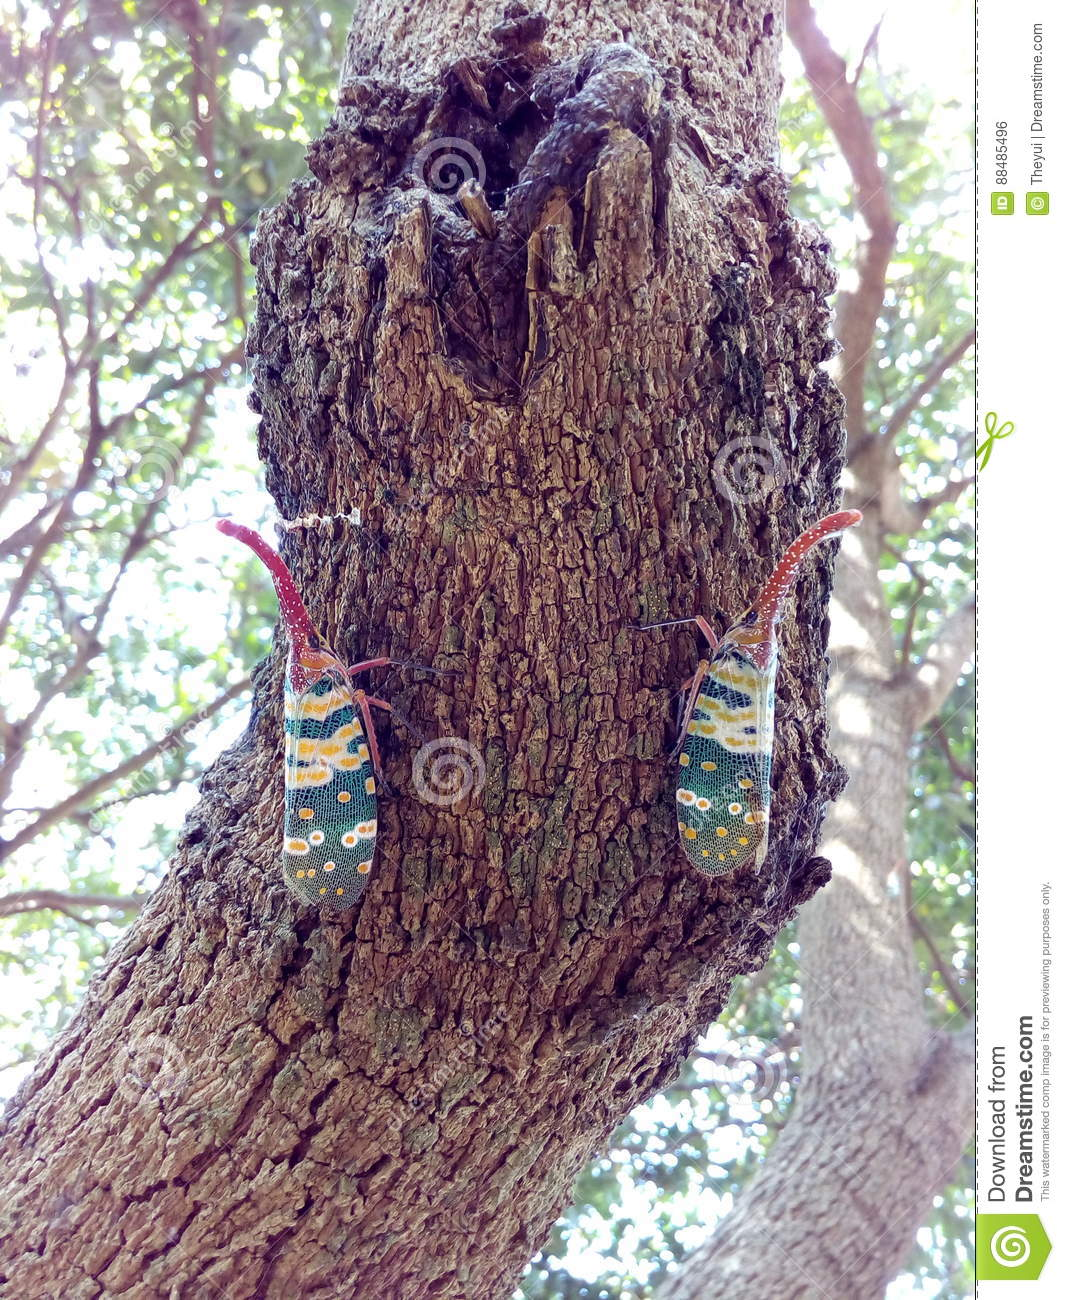 Insect bug Lanternfly Pyrops candelaria colour insect on tree fruit